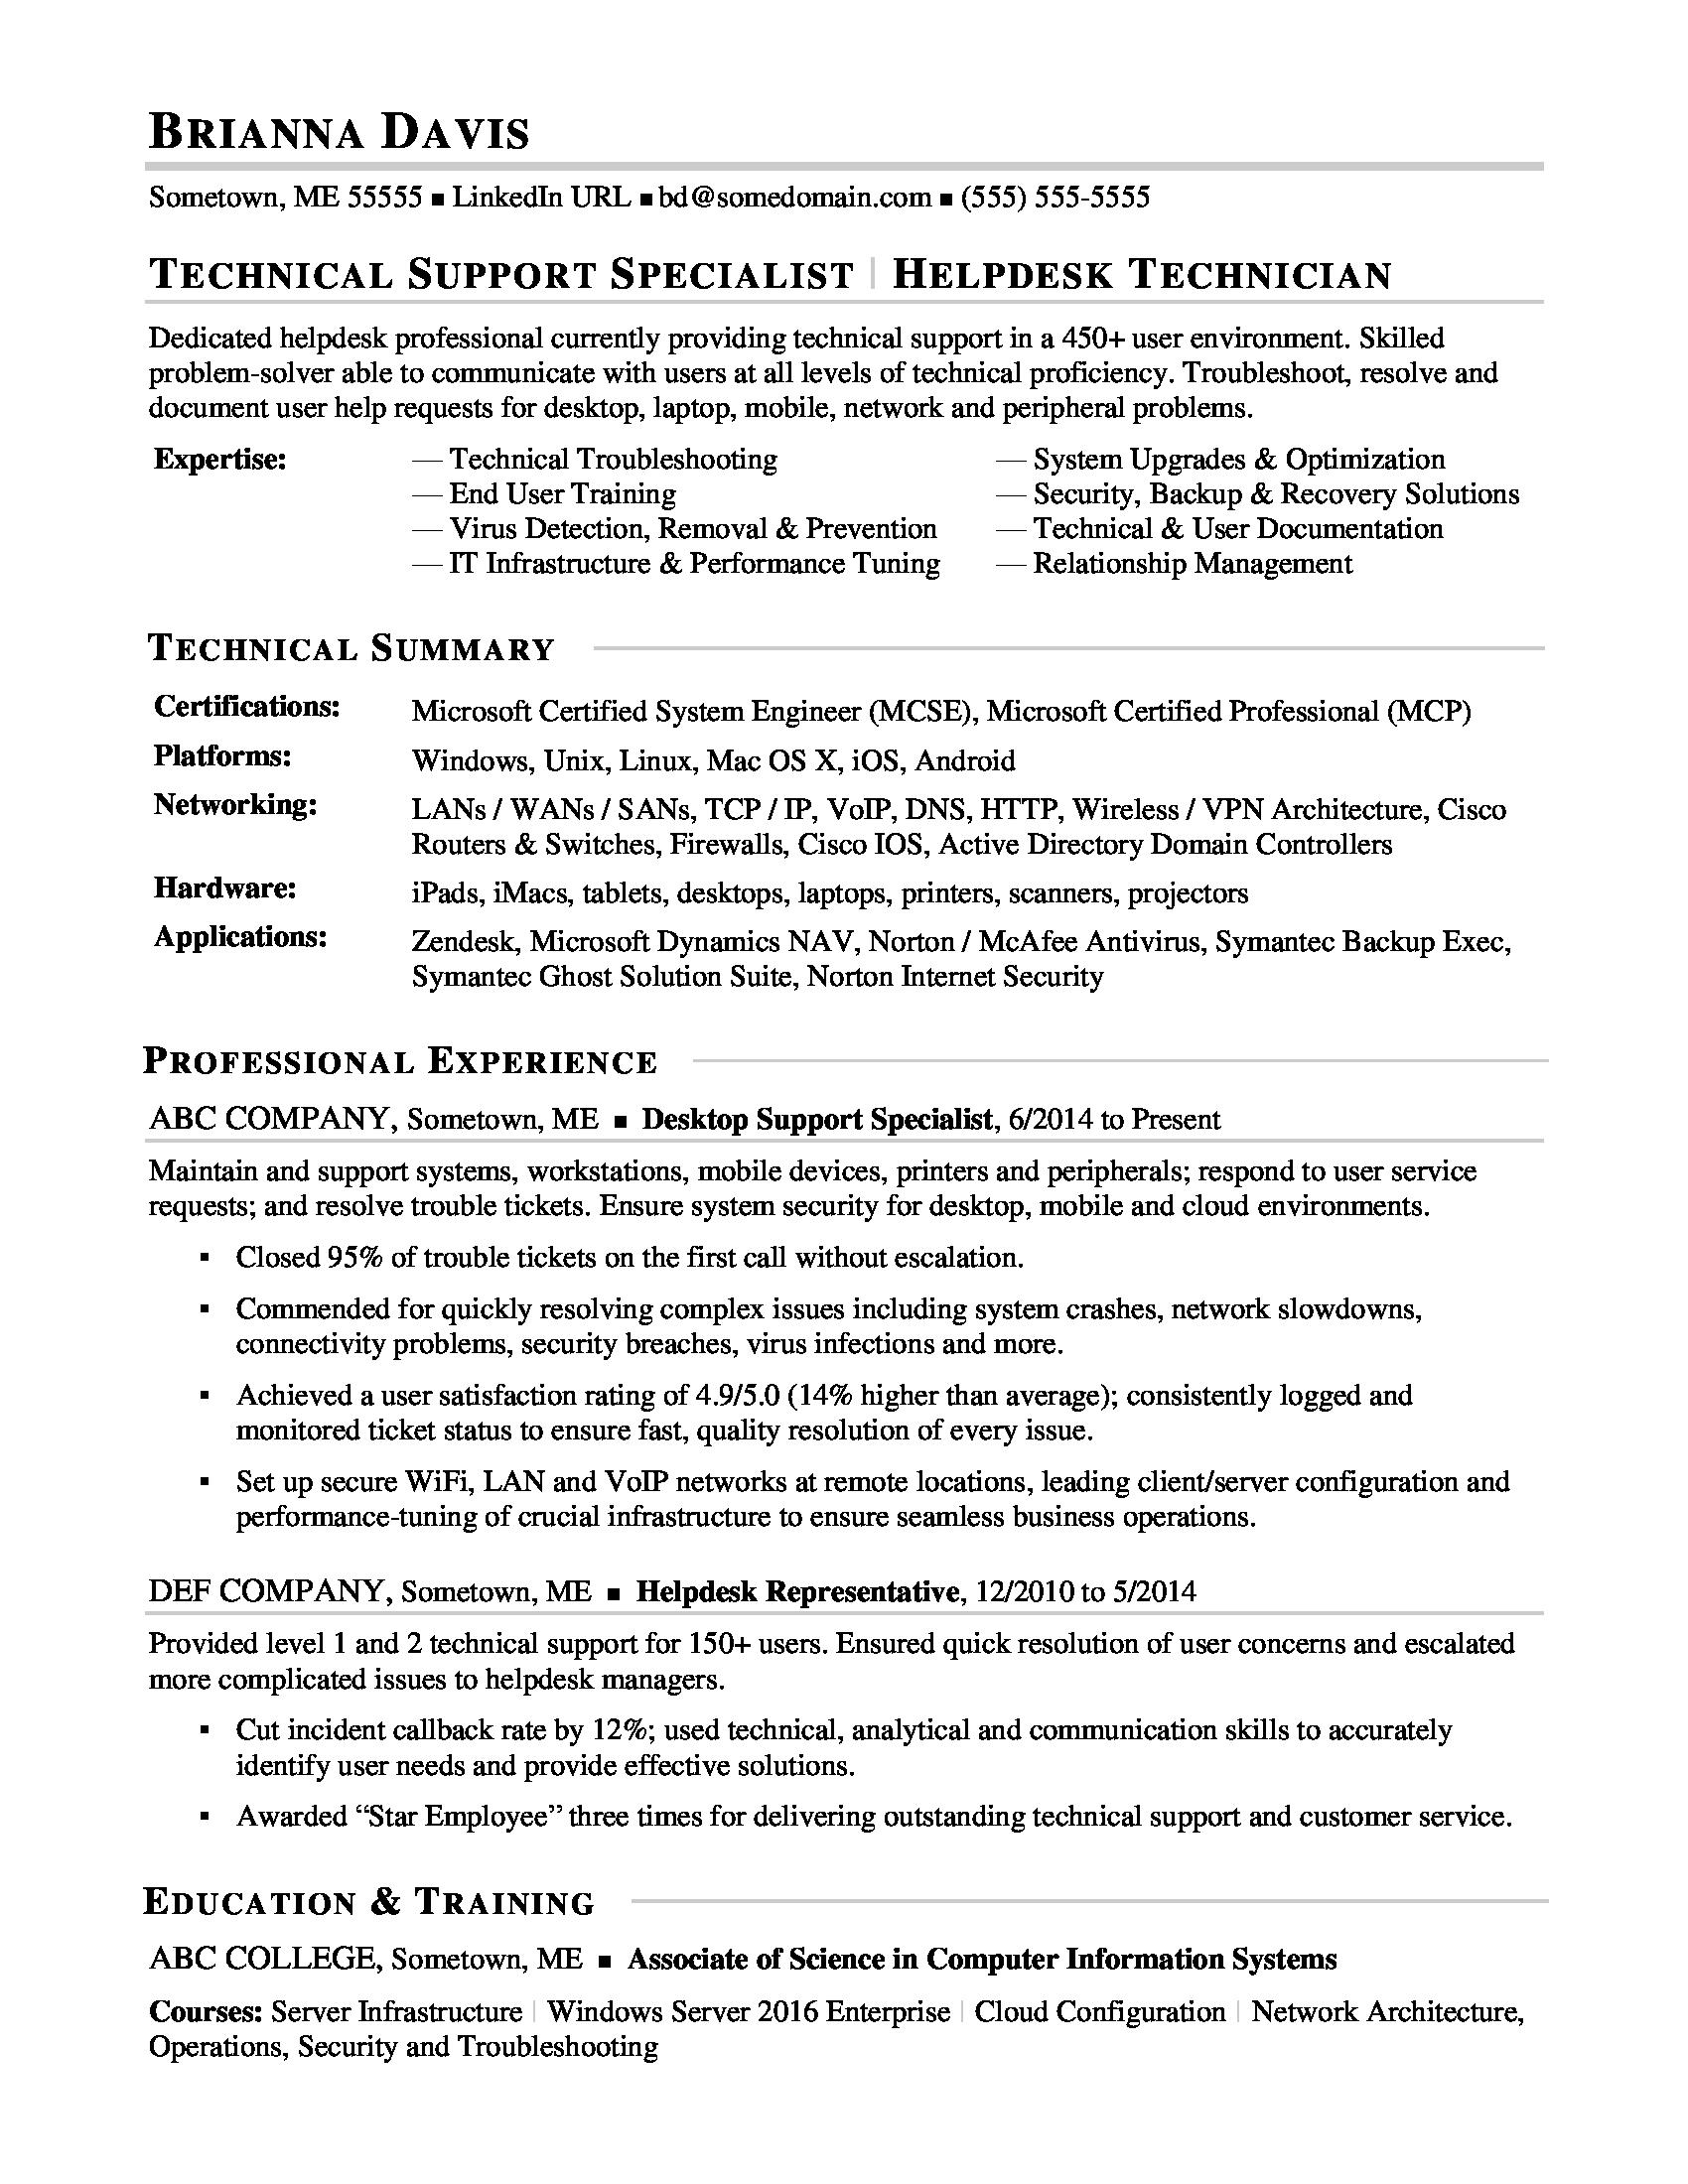 sample resume for experienced it help desk employee - Sample Resume Of It Technical Support